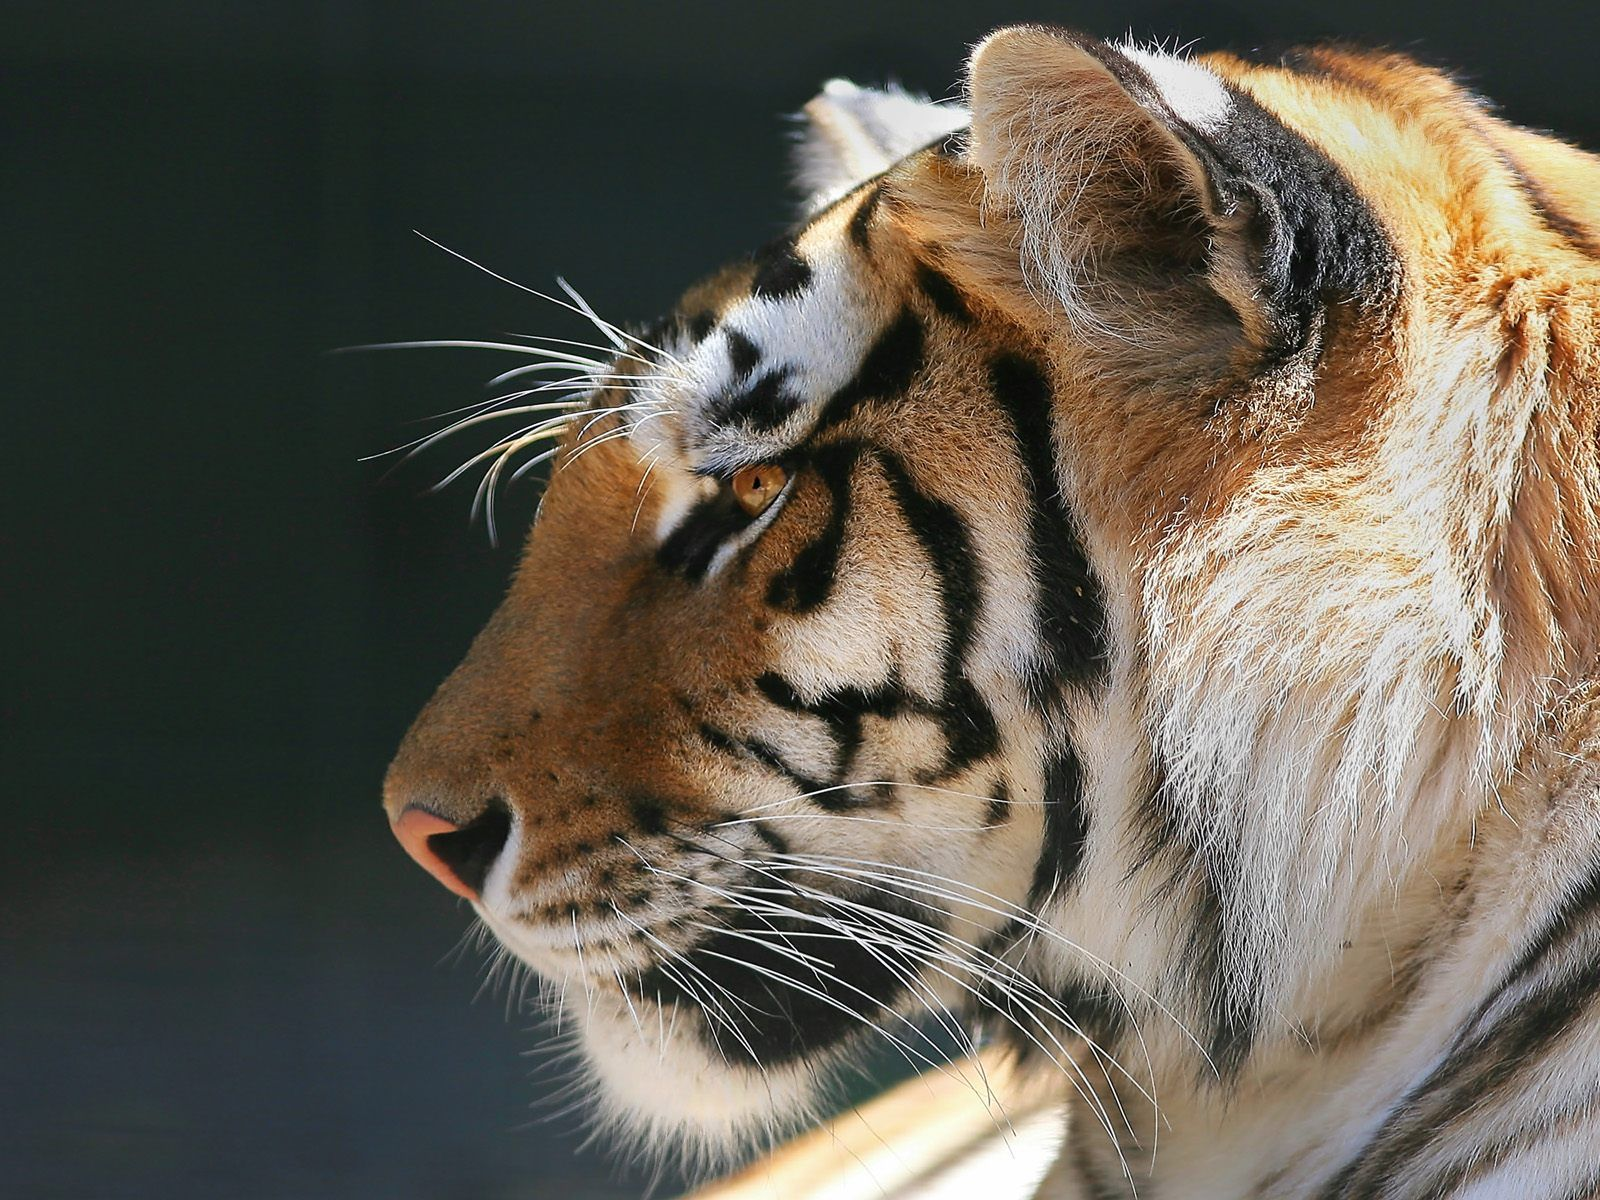 Www Babaimage Com Images Tiger Head Profile Tiger In Profile 1600x1200 Jpg Tigre Du Bengale Animales Animaux